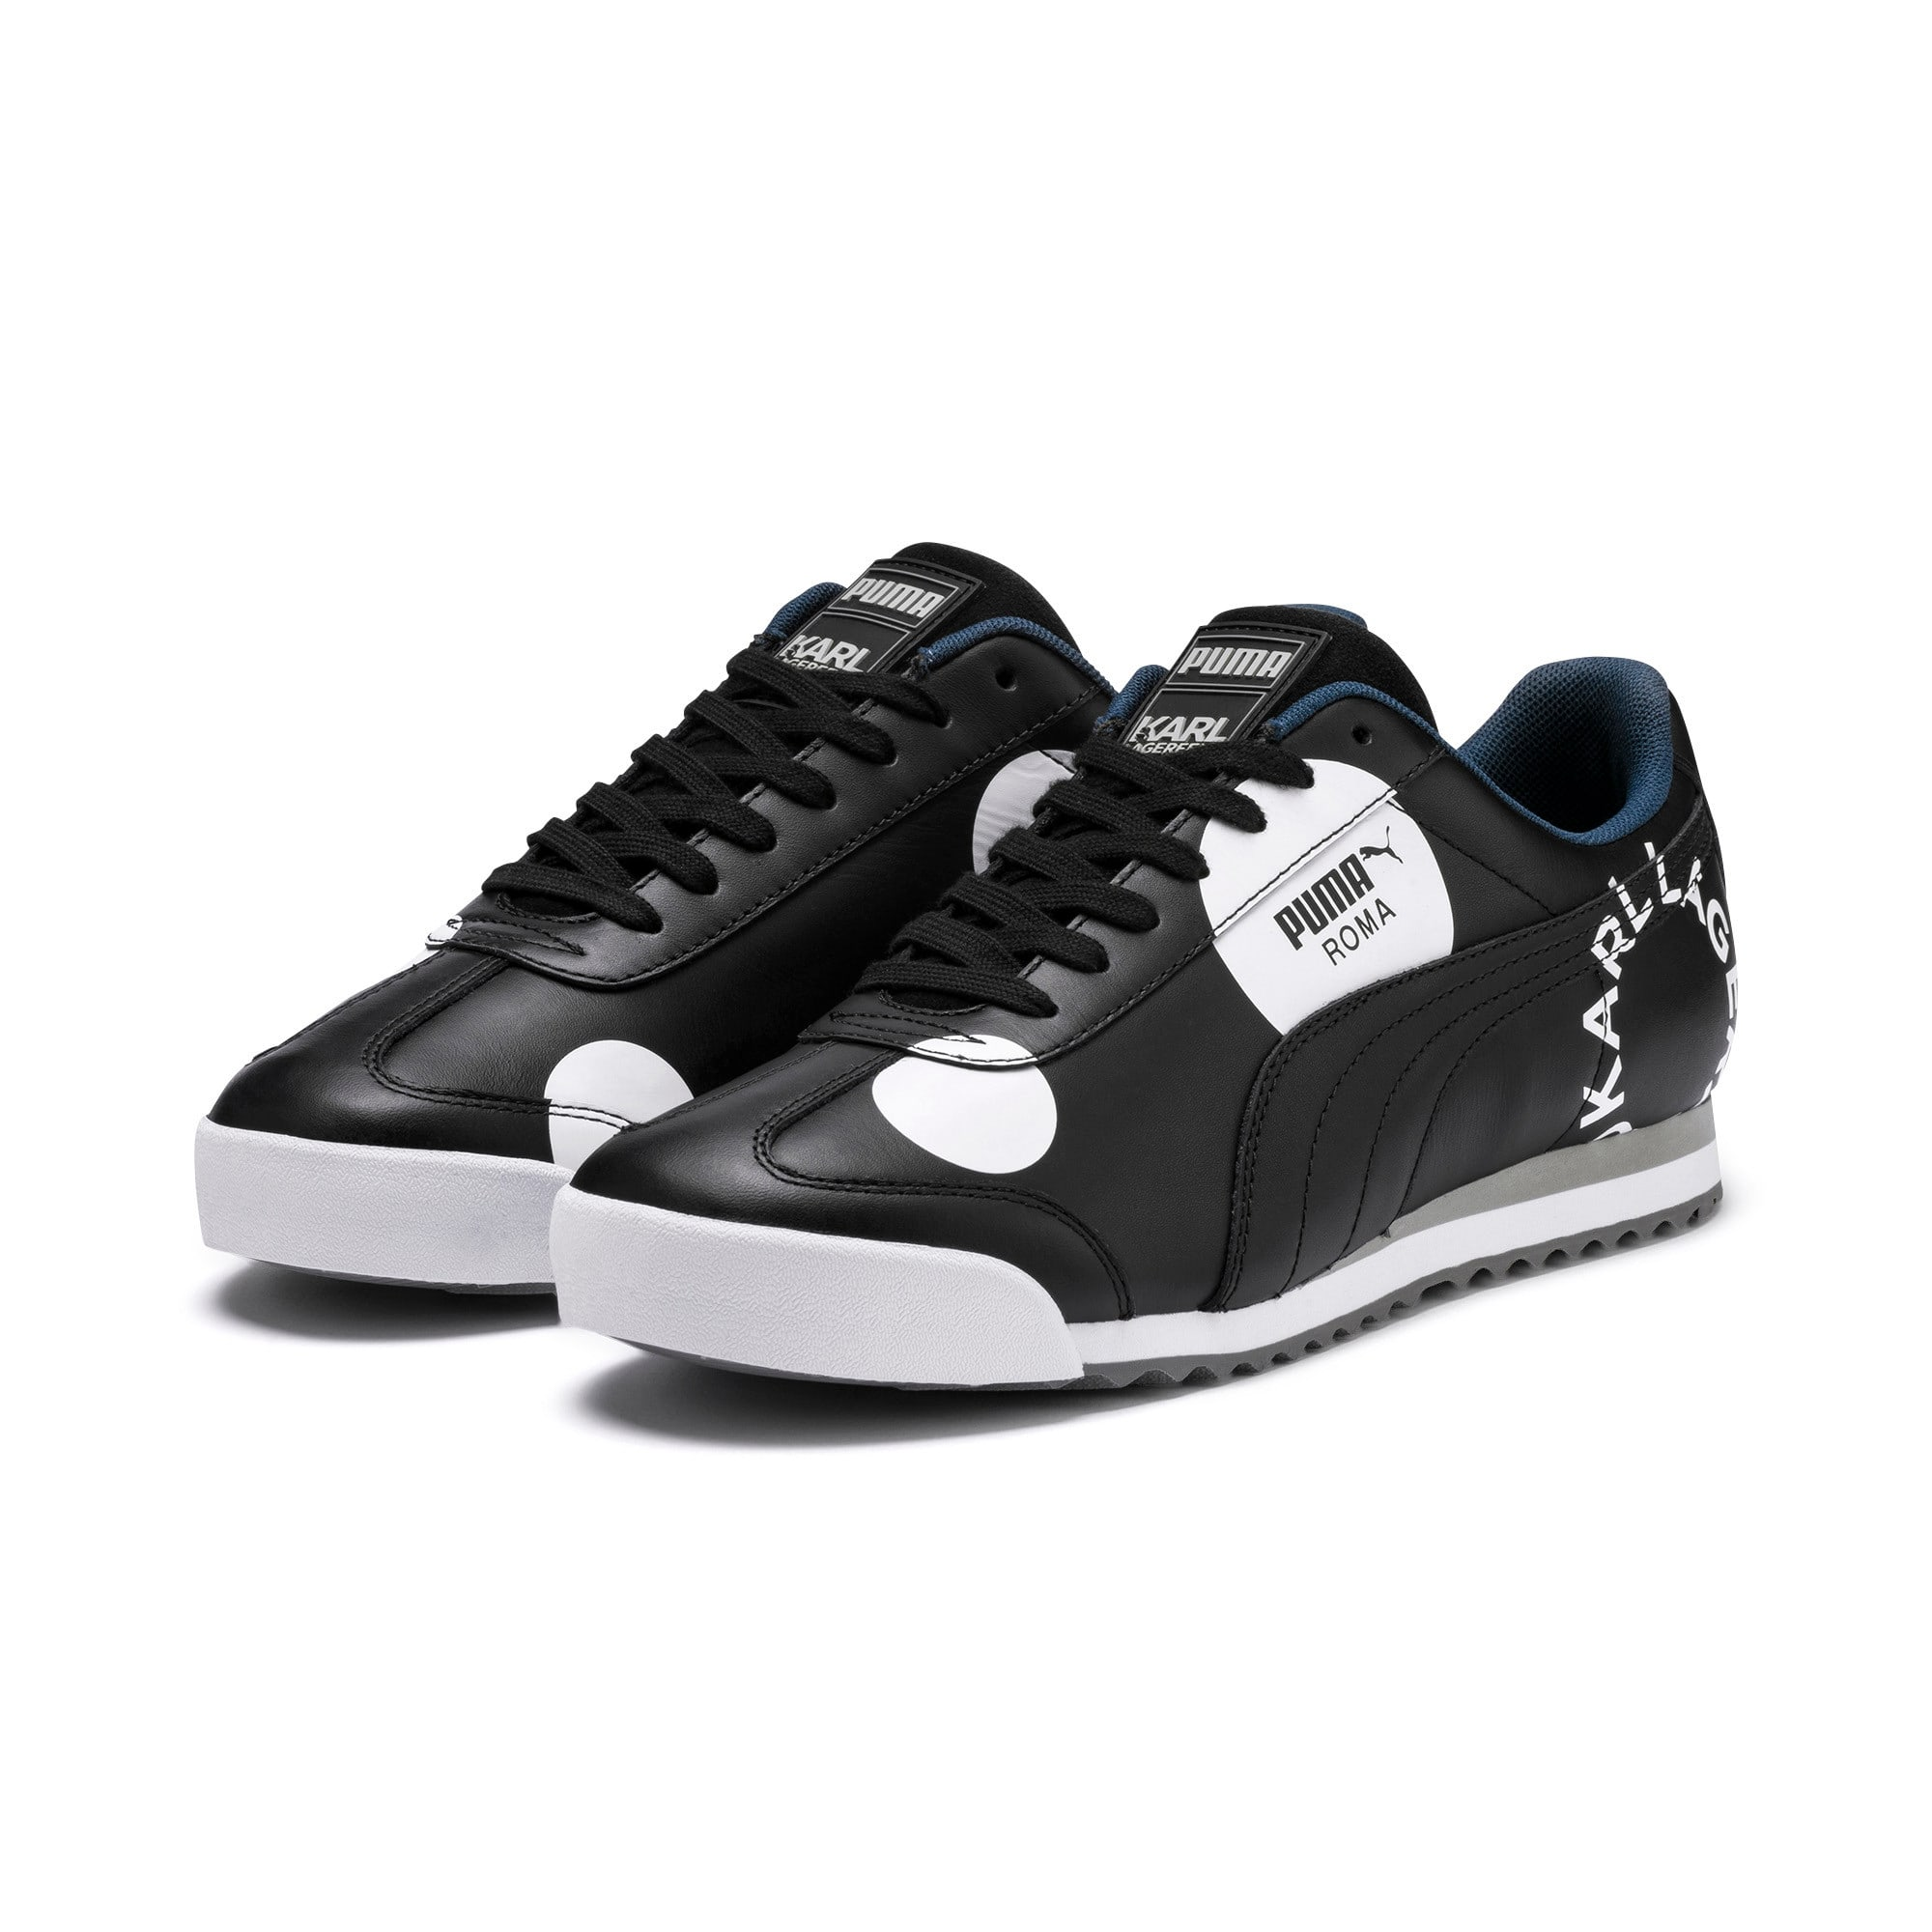 Thumbnail 2 of Zapatillas Roma PUMA x KARL LAGERFELD, Puma Black, medium